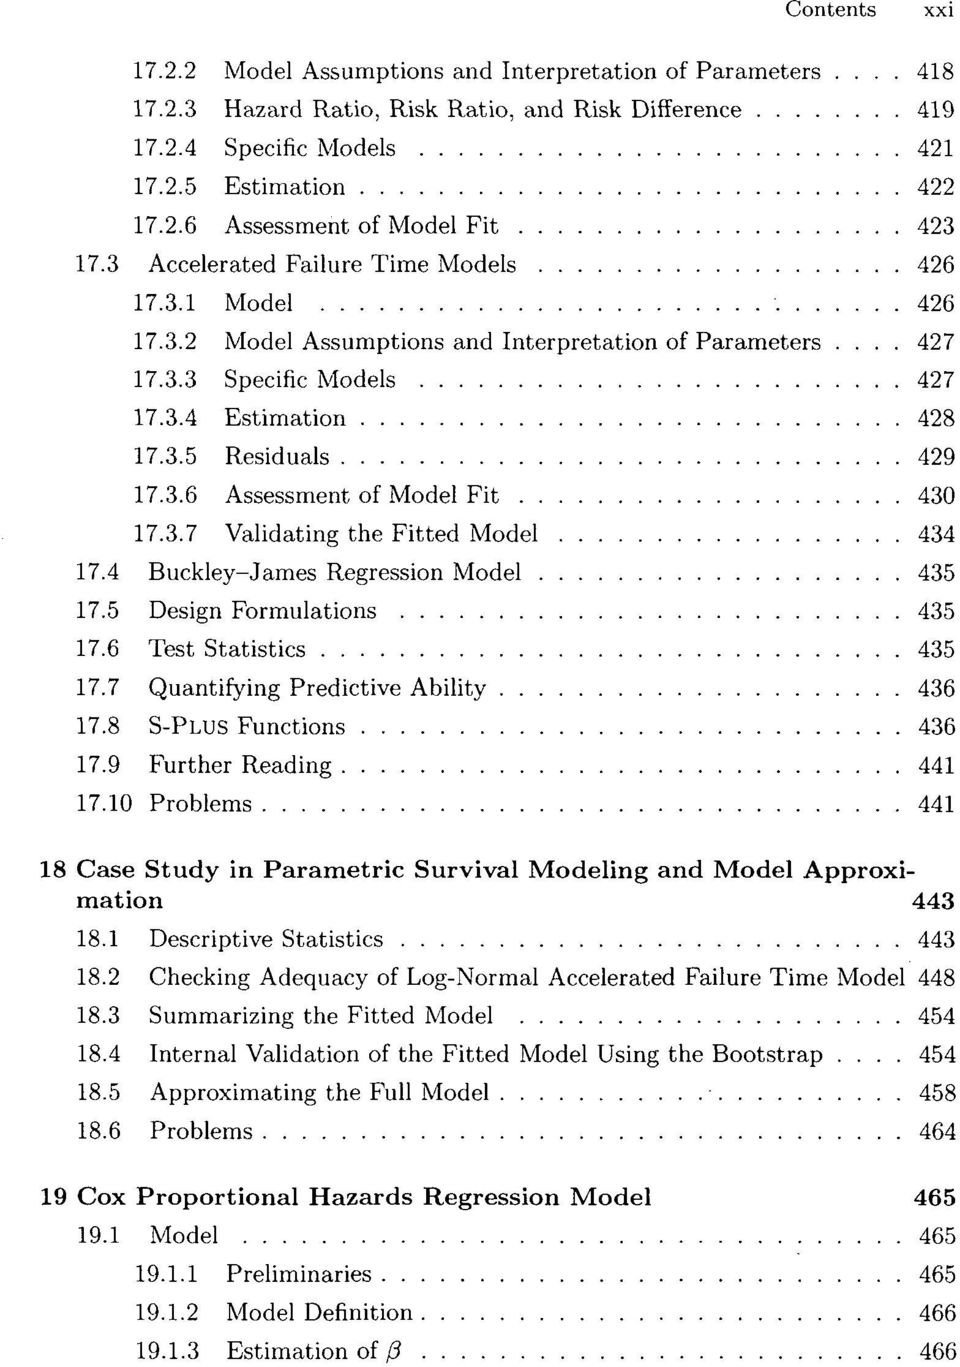 3.7 Validating the Fitted Model 434 17.4 Buckley-James Regression Model 435 17.5 Design Formulations 435 17.6 Test Statistics 435 17.7 Quantifying Predictive Ability 436 17.8 S-PLUS Functions 436 17.